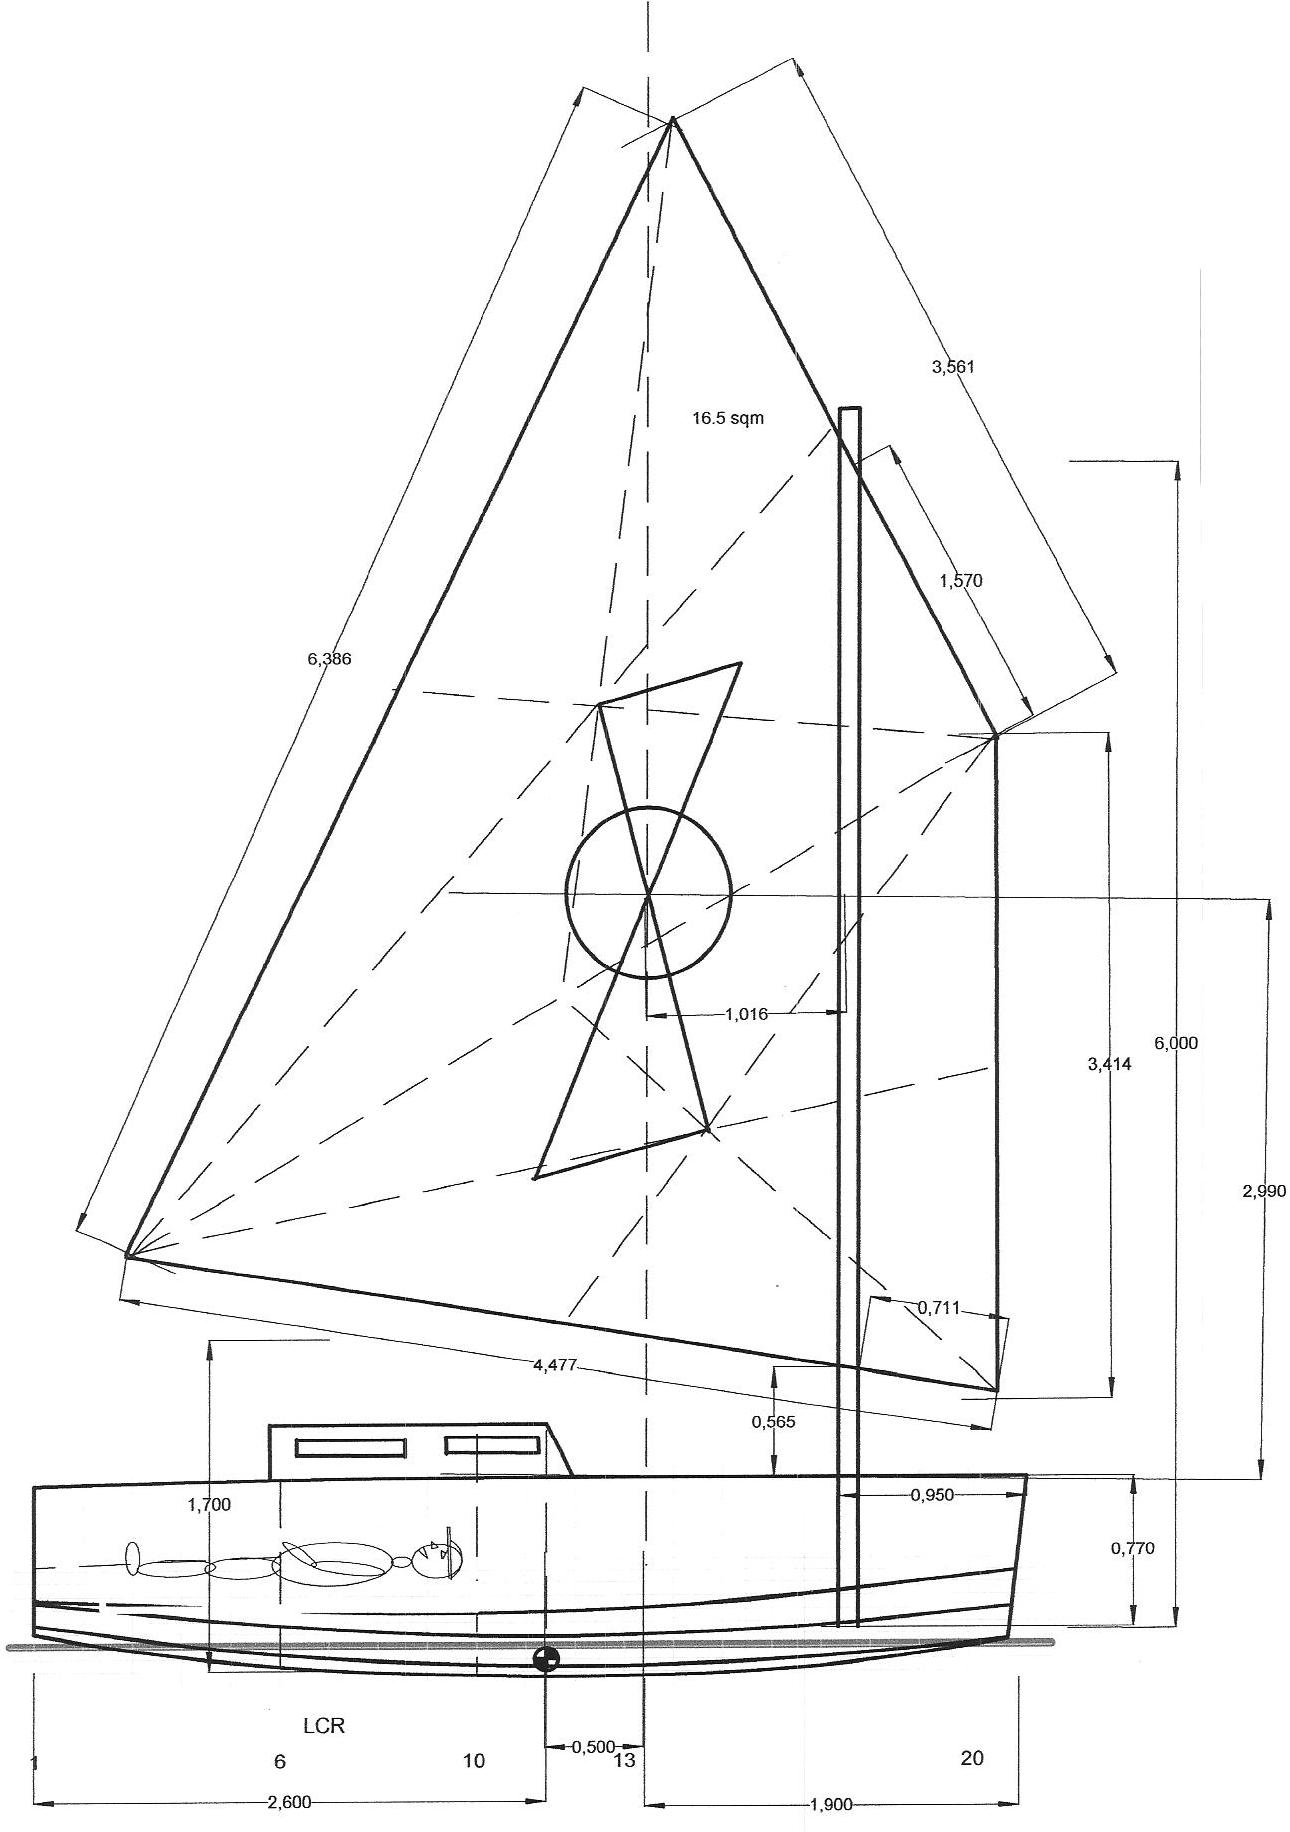 Balanced Lug Sail Compaxboats